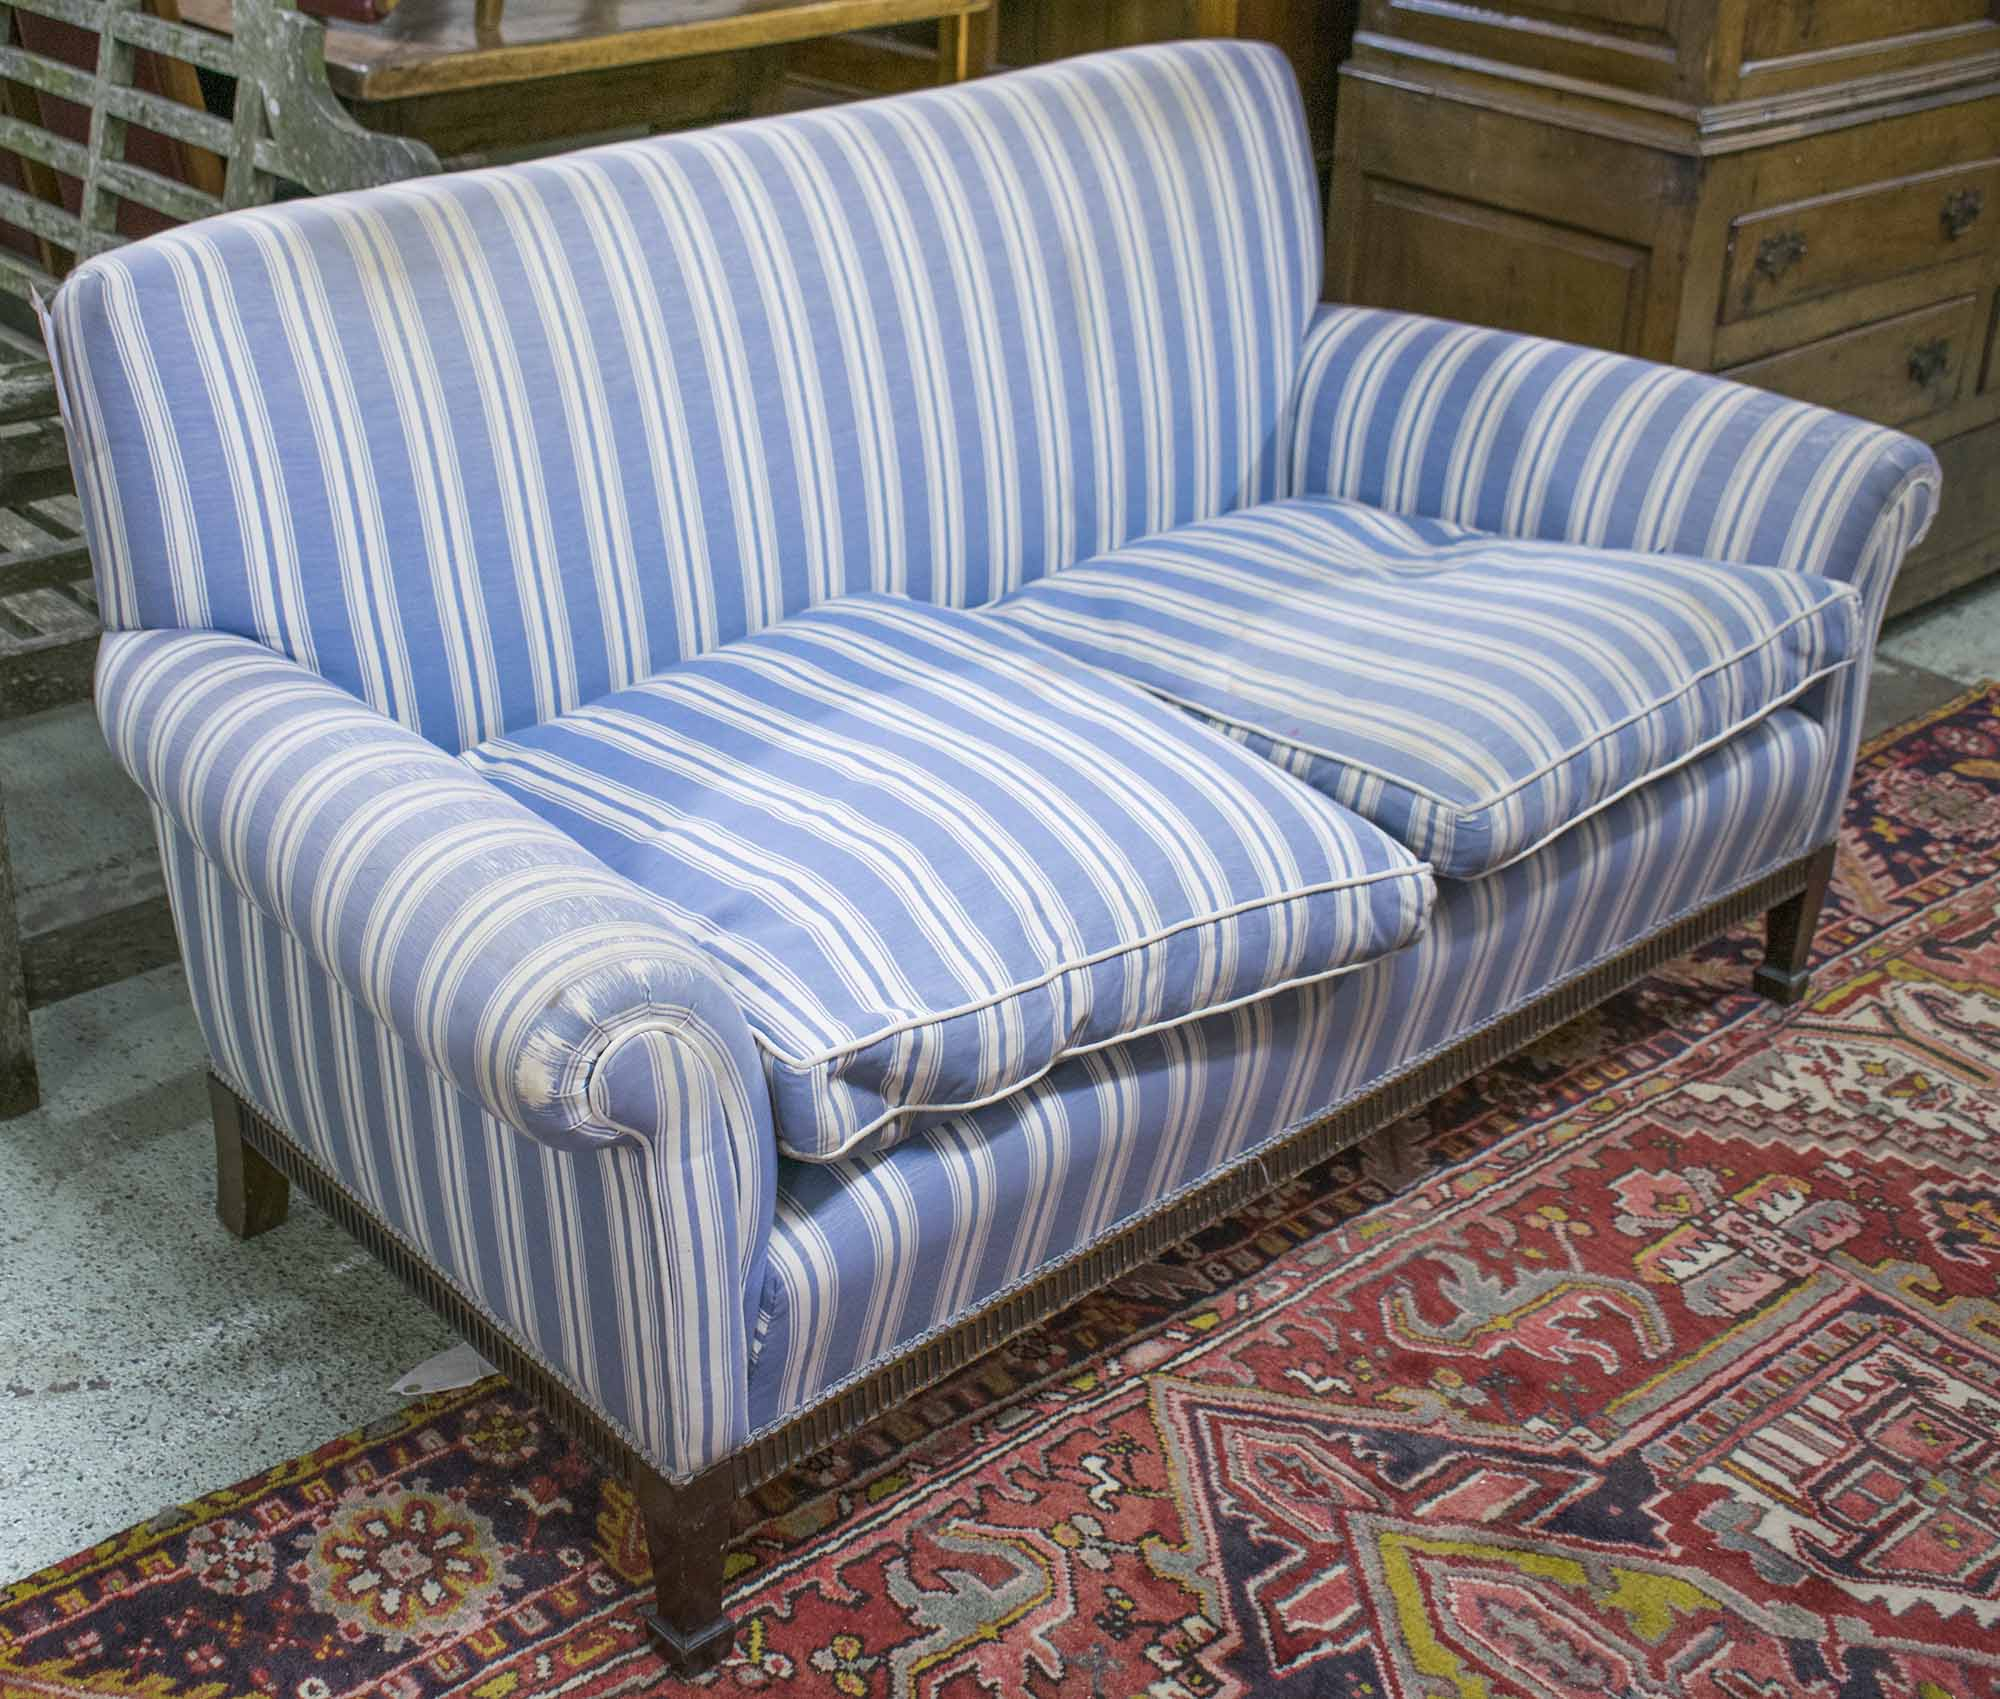 Withdrawn Sofa, Edwardian Mahogany Two Seater In Blue And Throughout Striped Sofas And Chairs (View 10 of 15)